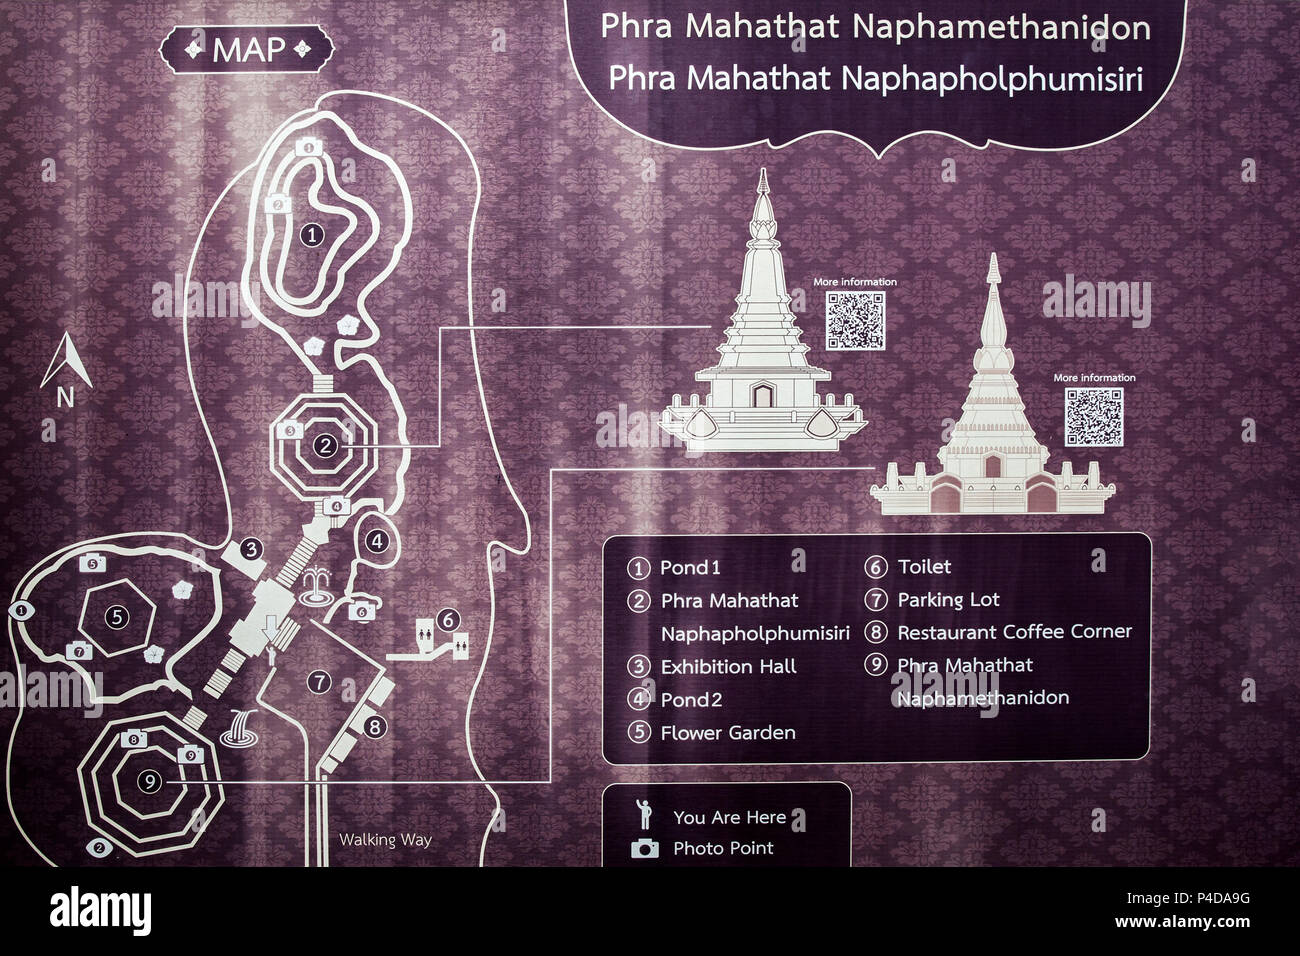 Doi Inthanon  Thailand  map  localization attraction information - Stock Image